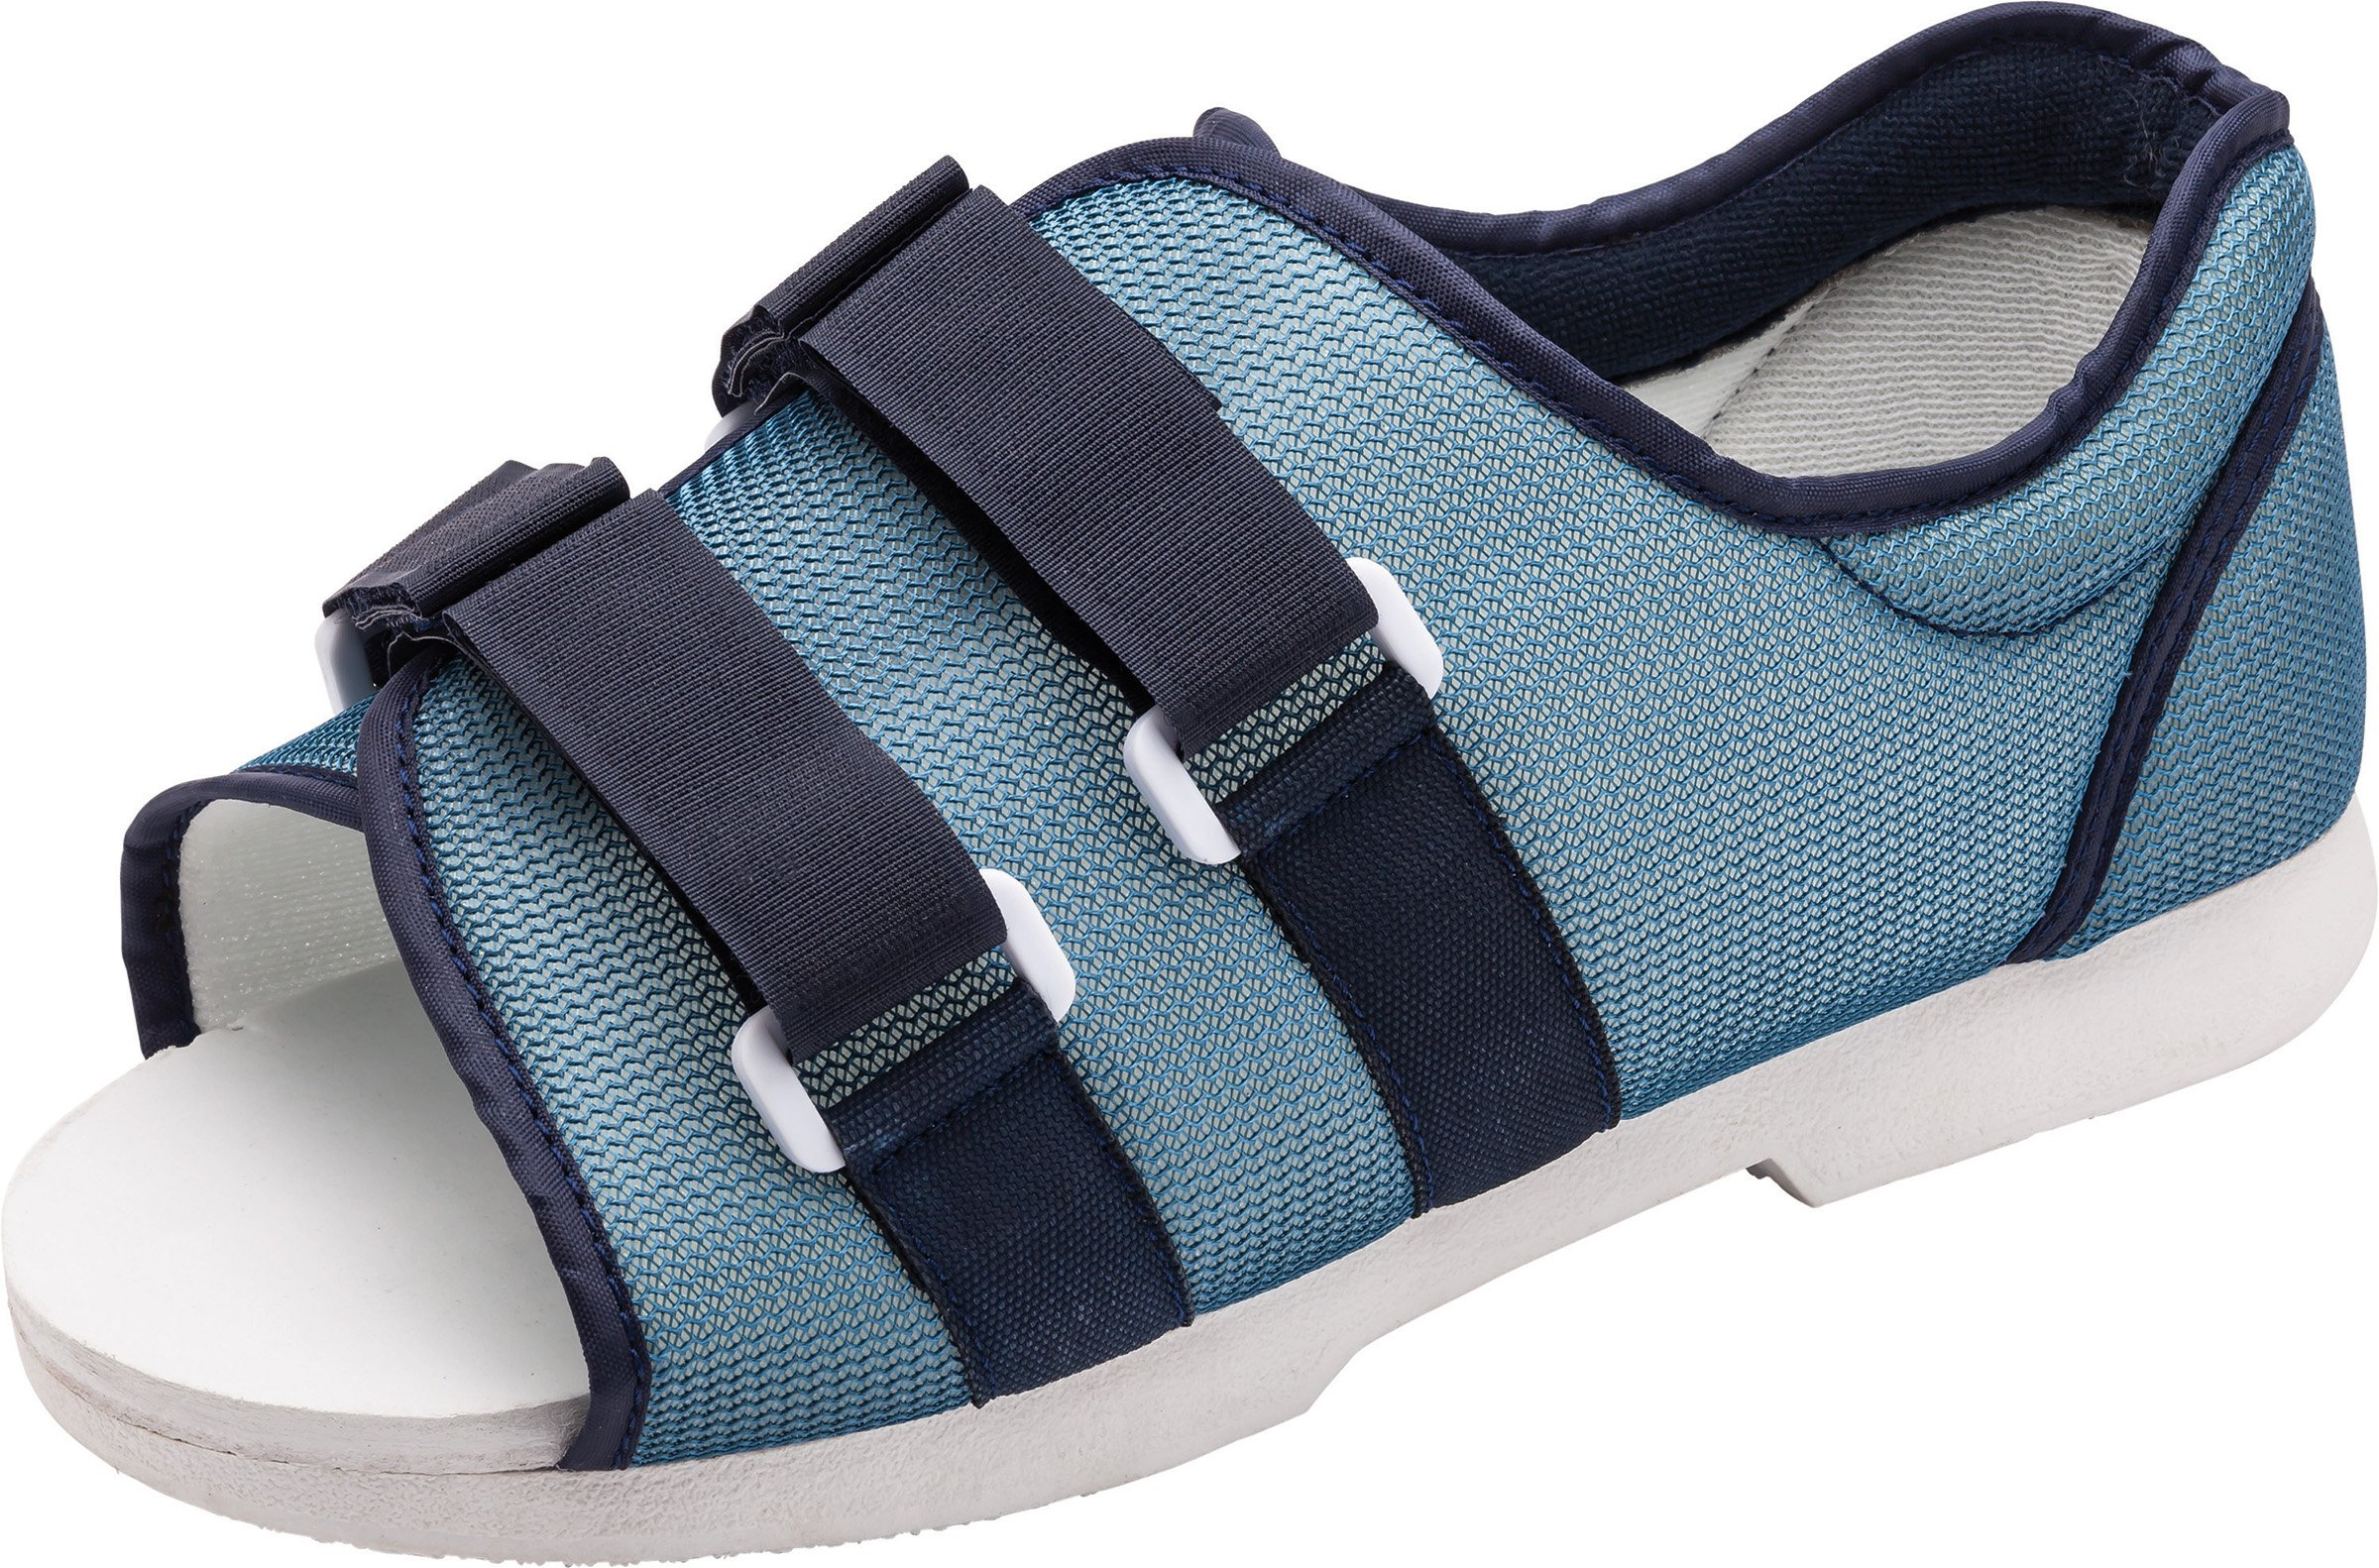 Ossur Mesh Top Post-Op Shoe - Breathable Mesh for All Day Comfort (Women's Large) by Ossur